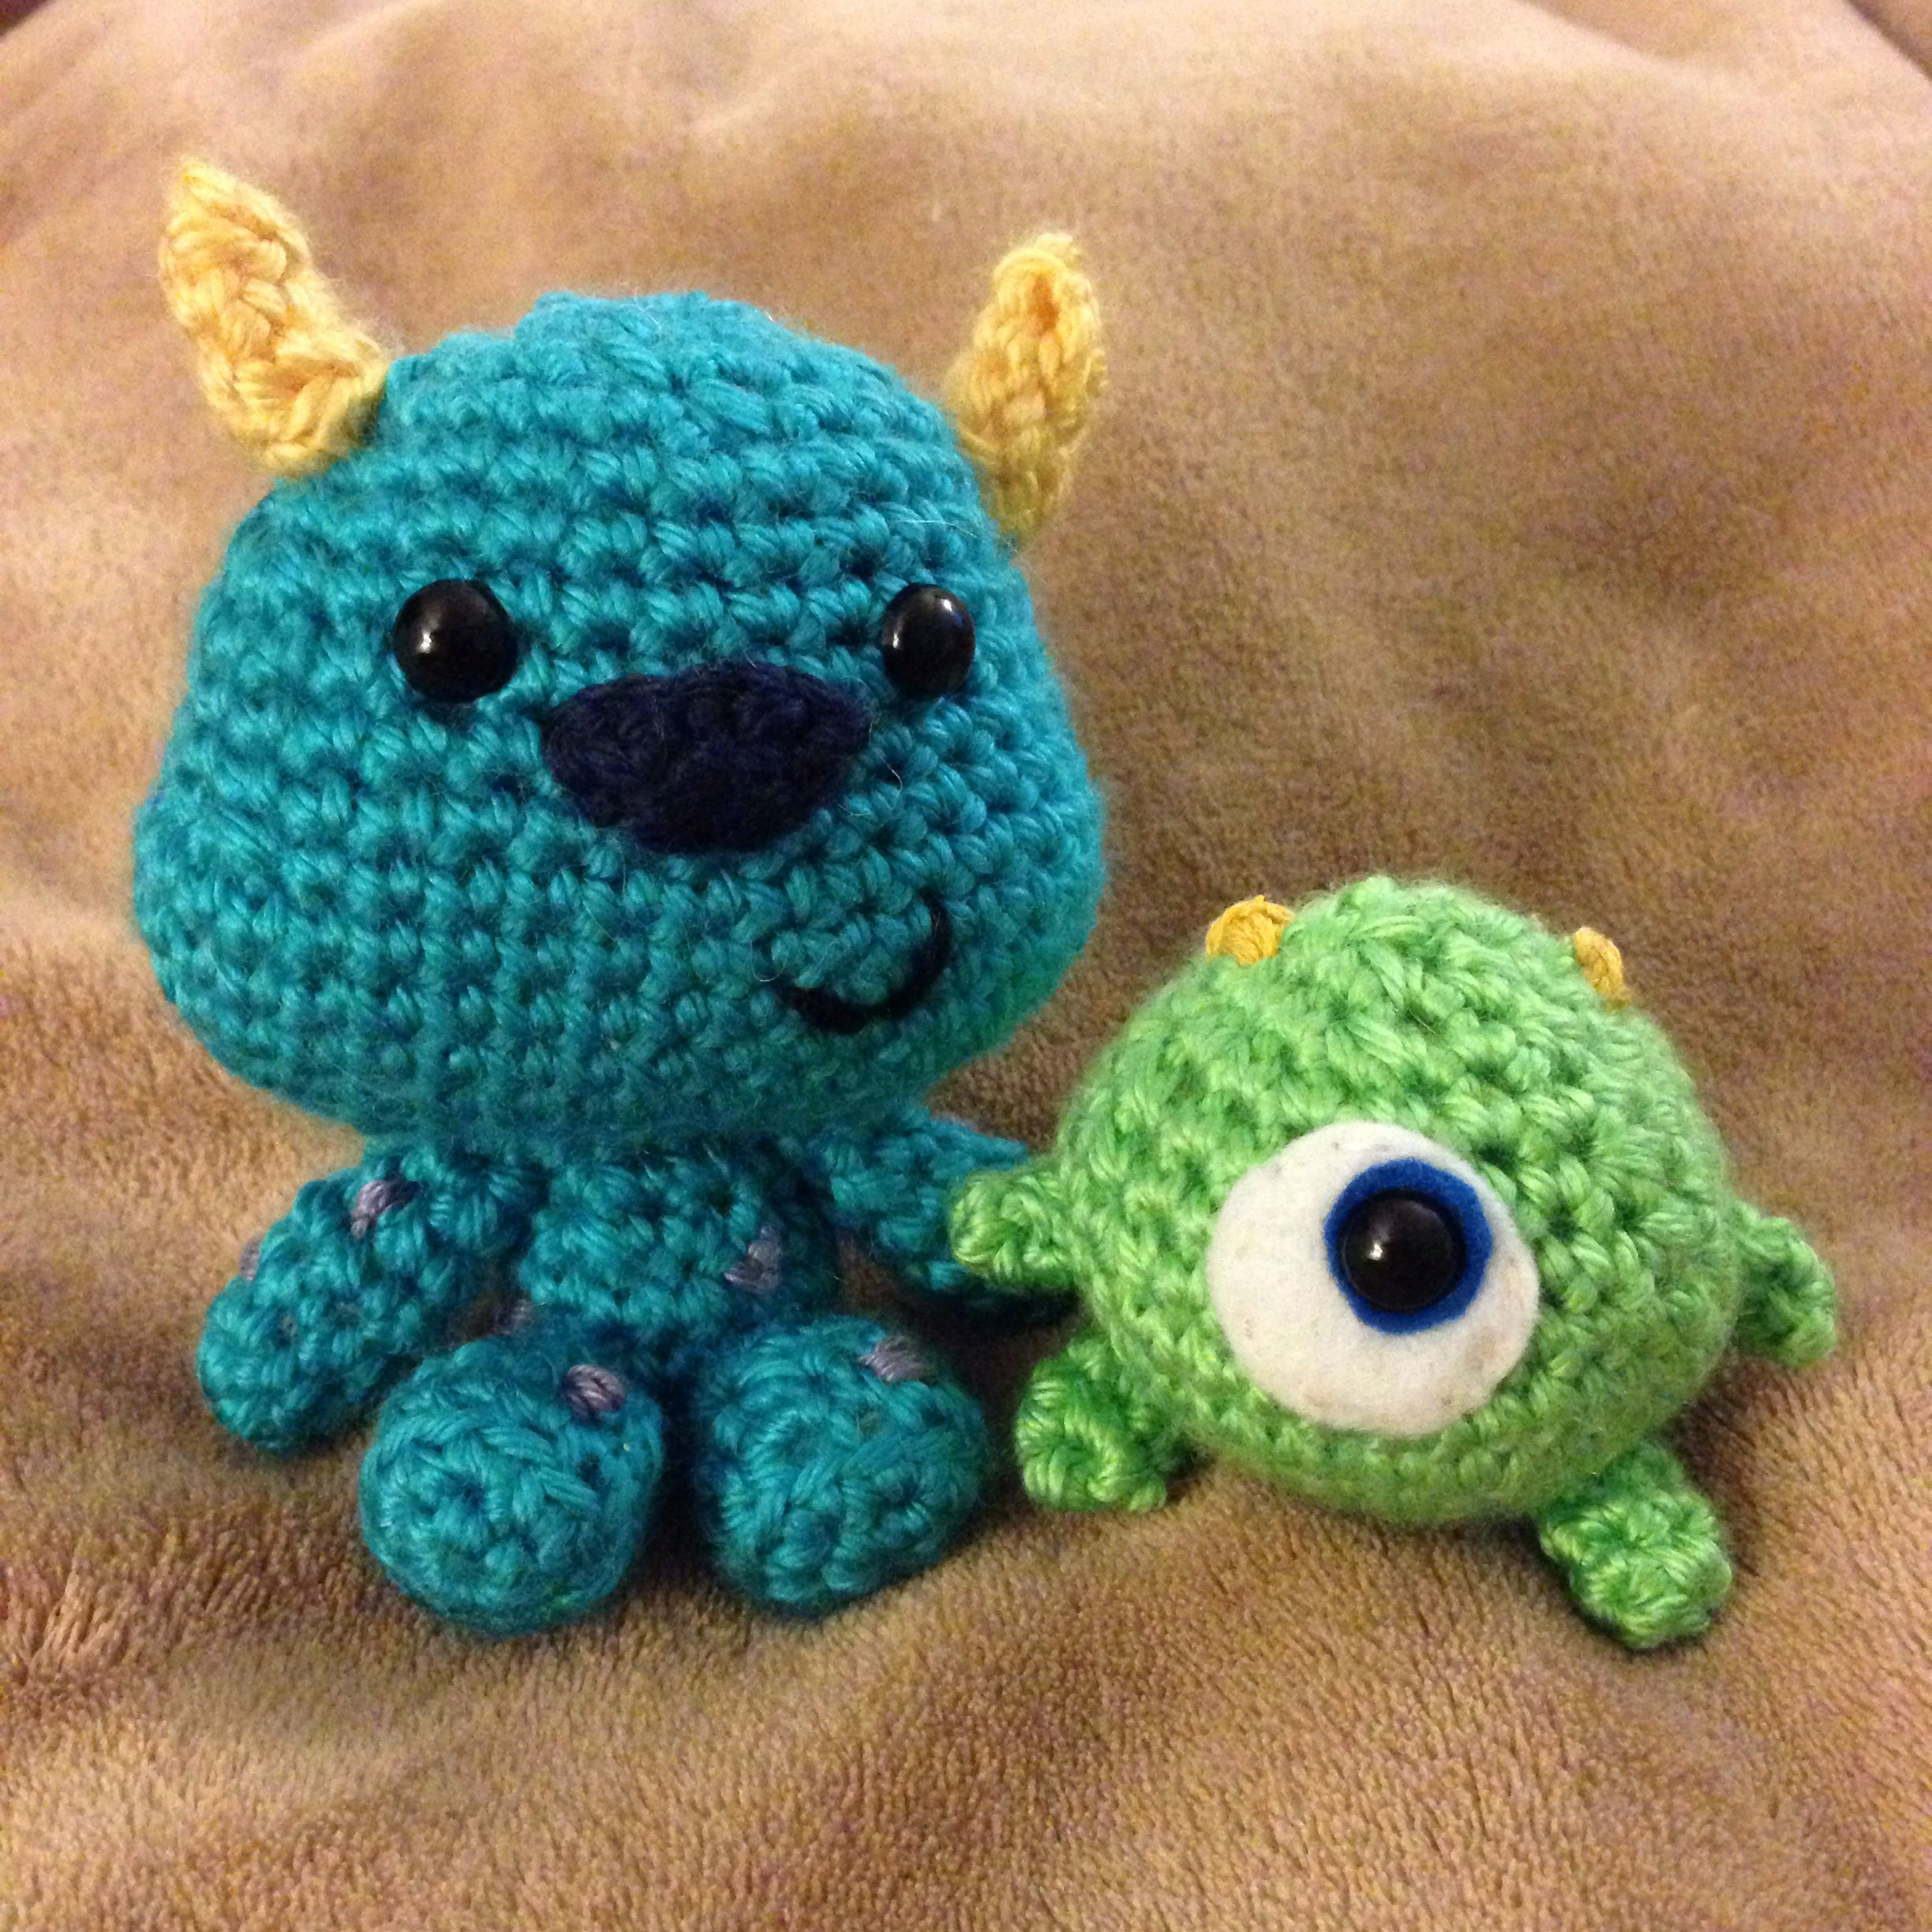 Amigurumi Monsters Inc : Baby mike and sully crochet amigurumi dolls from monsters ...